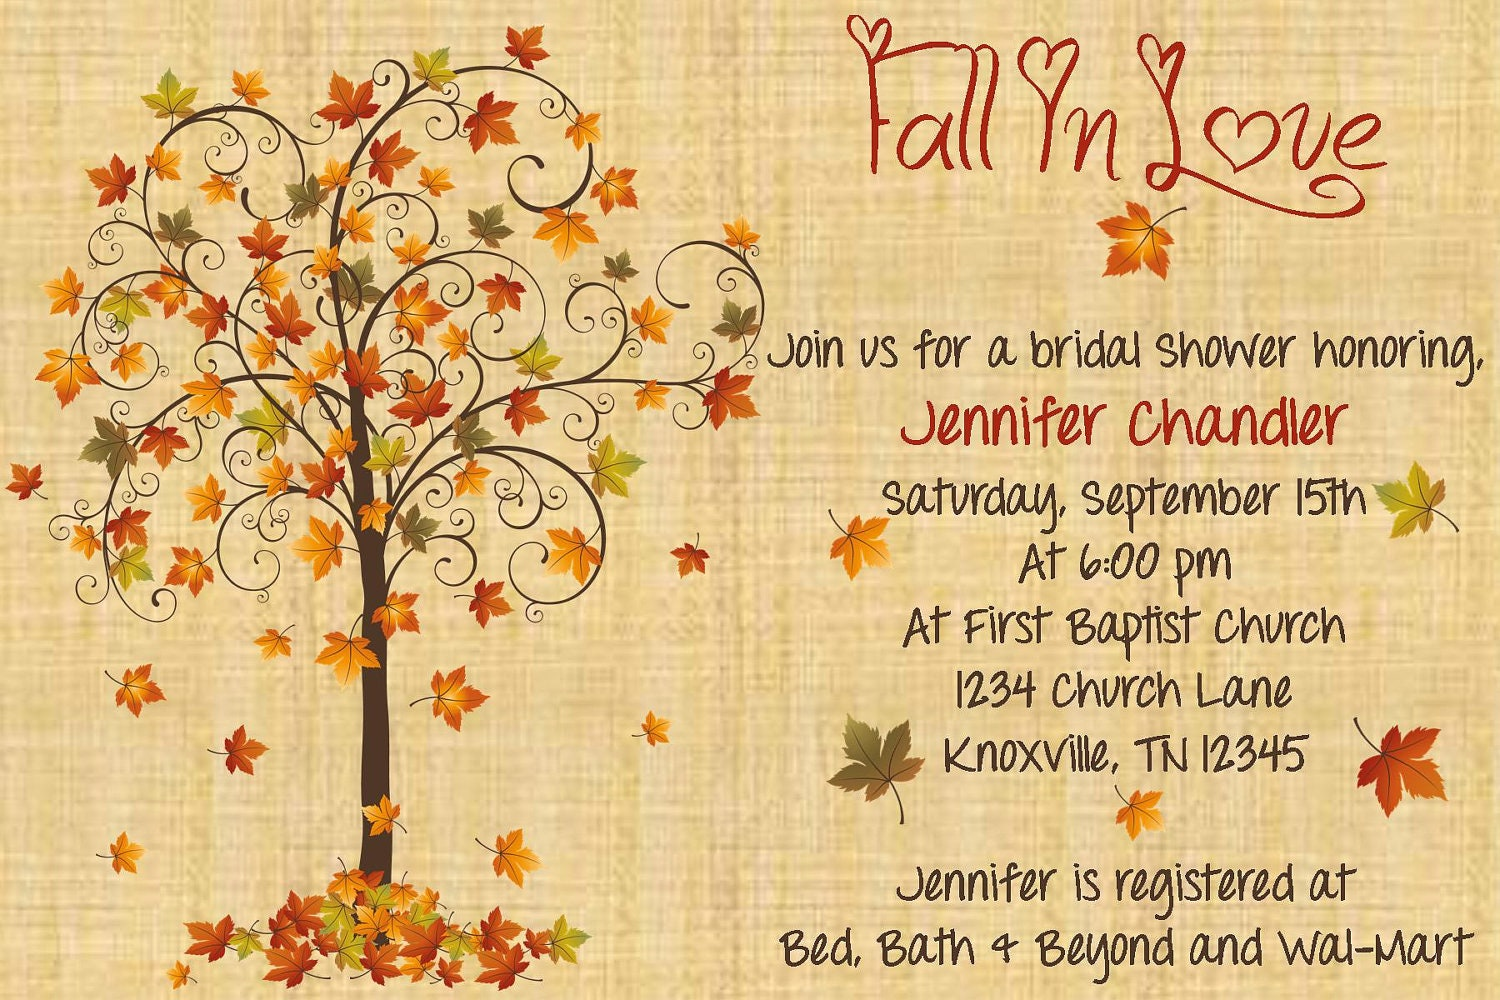 Fall In Love Bridal Shower Invitation By WhateverIs On Etsy